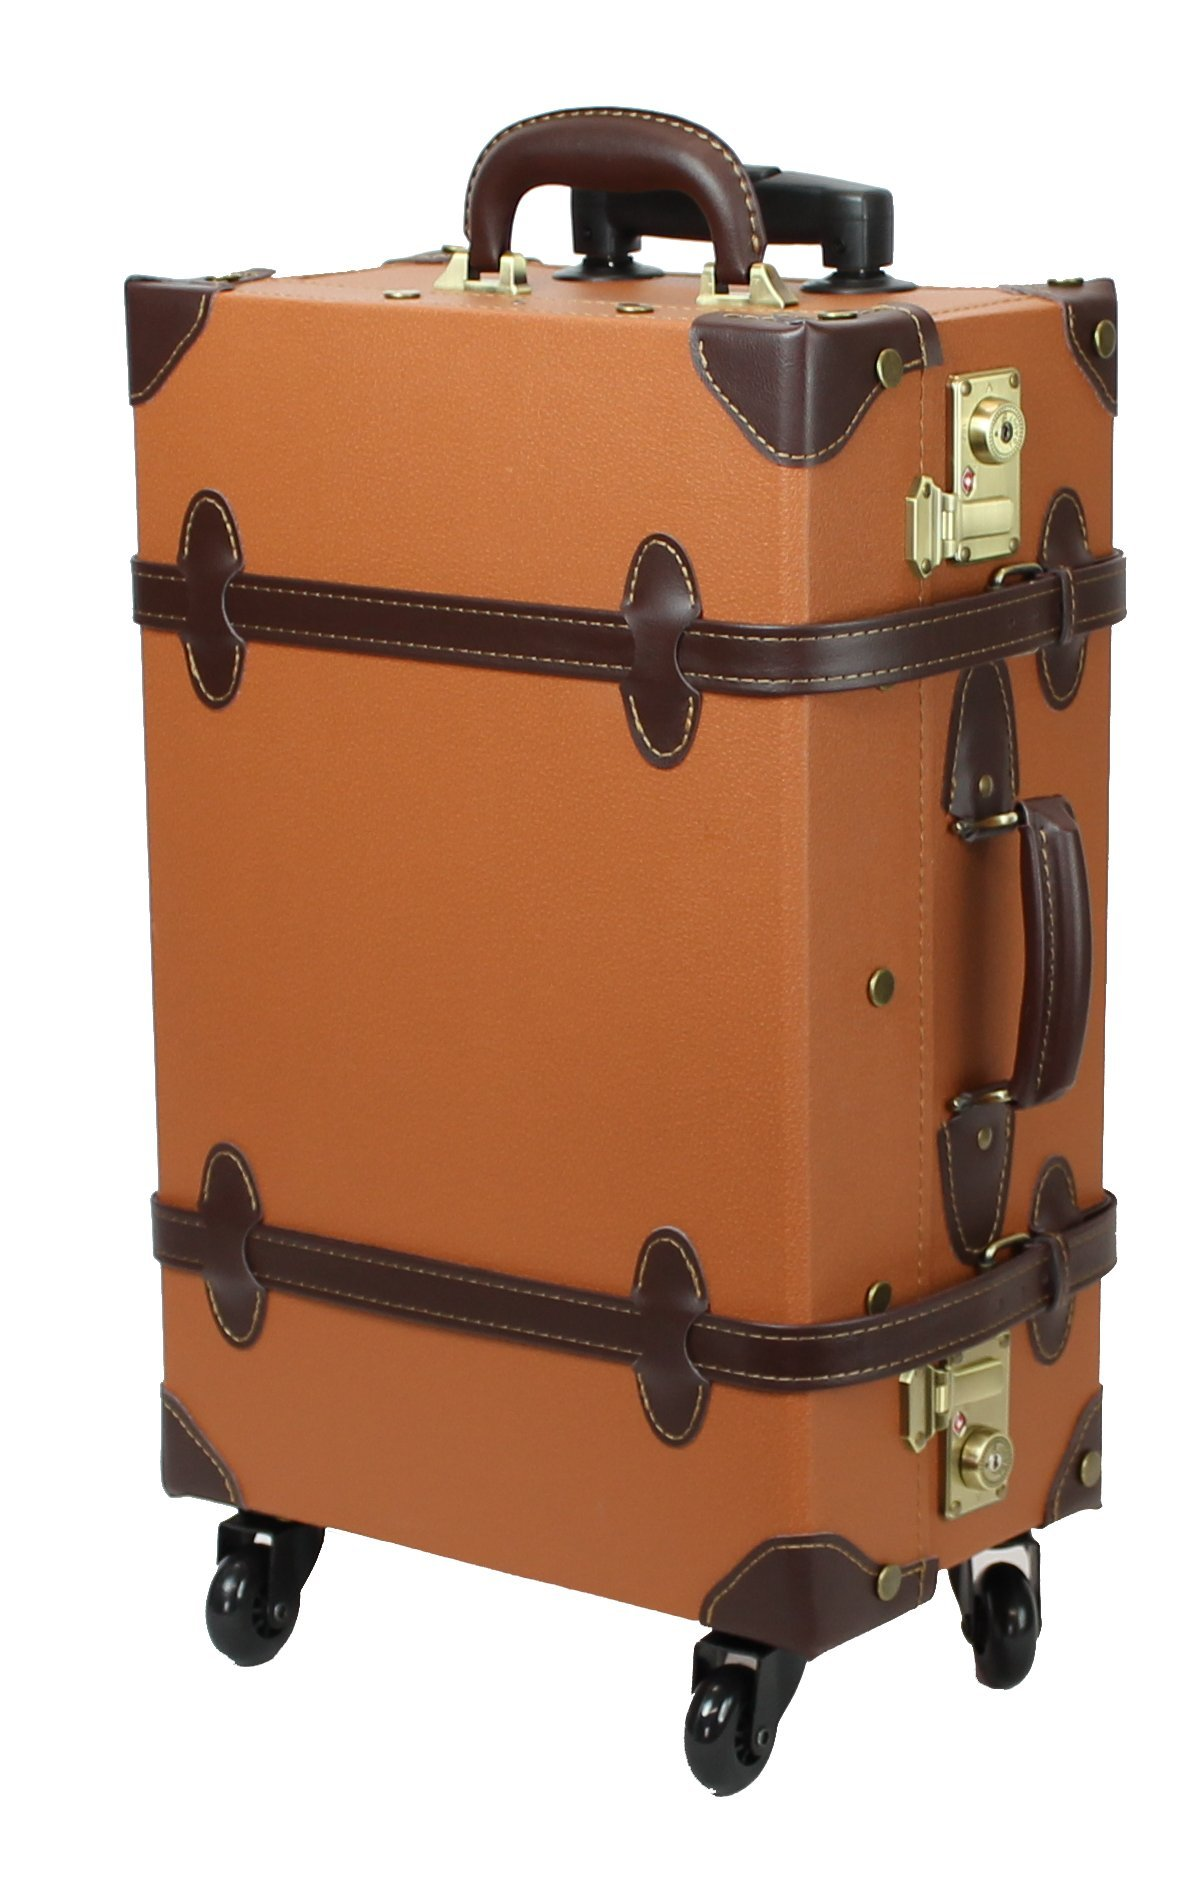 MOIERG Vintage Trolley Luggage suitcase 2tone TSA Camel Large(81-55037-72)